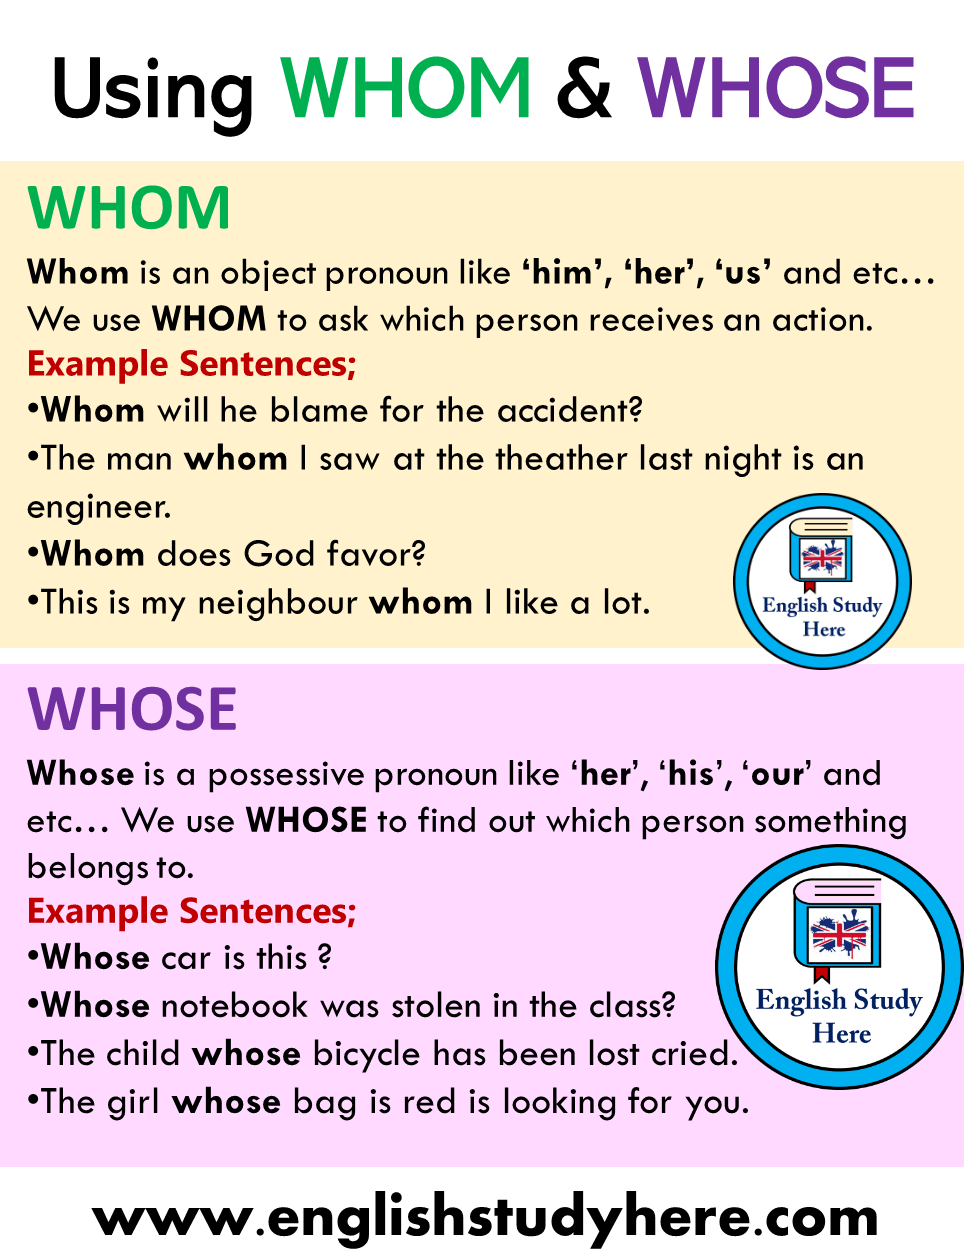 Using, Difference Whom and Whose in English